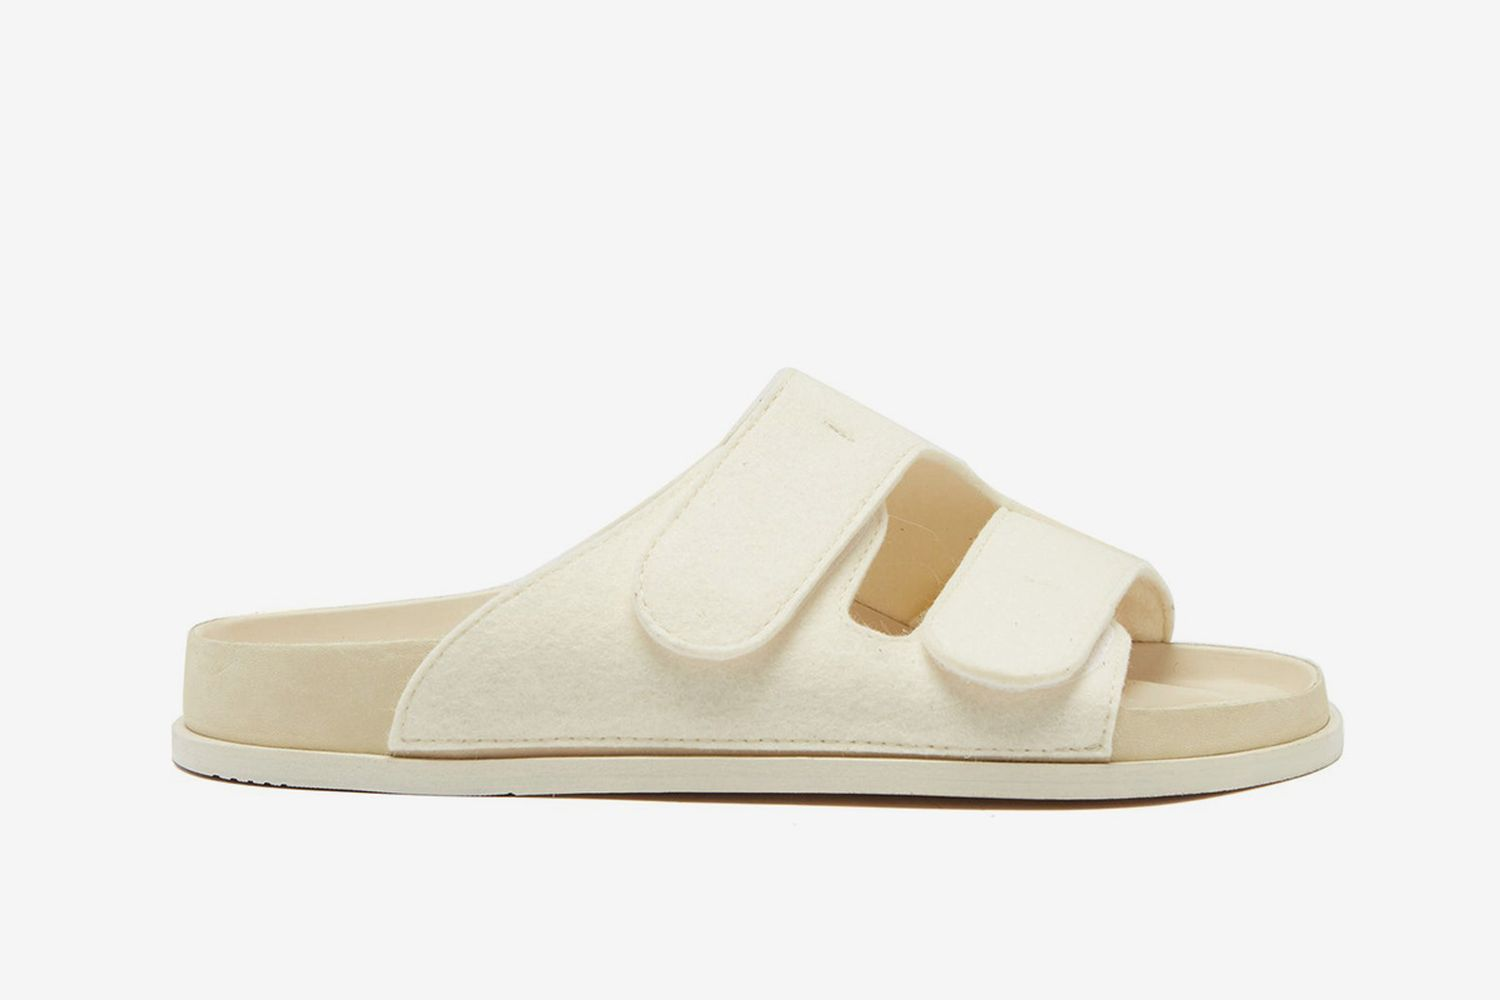 Forager Sandals